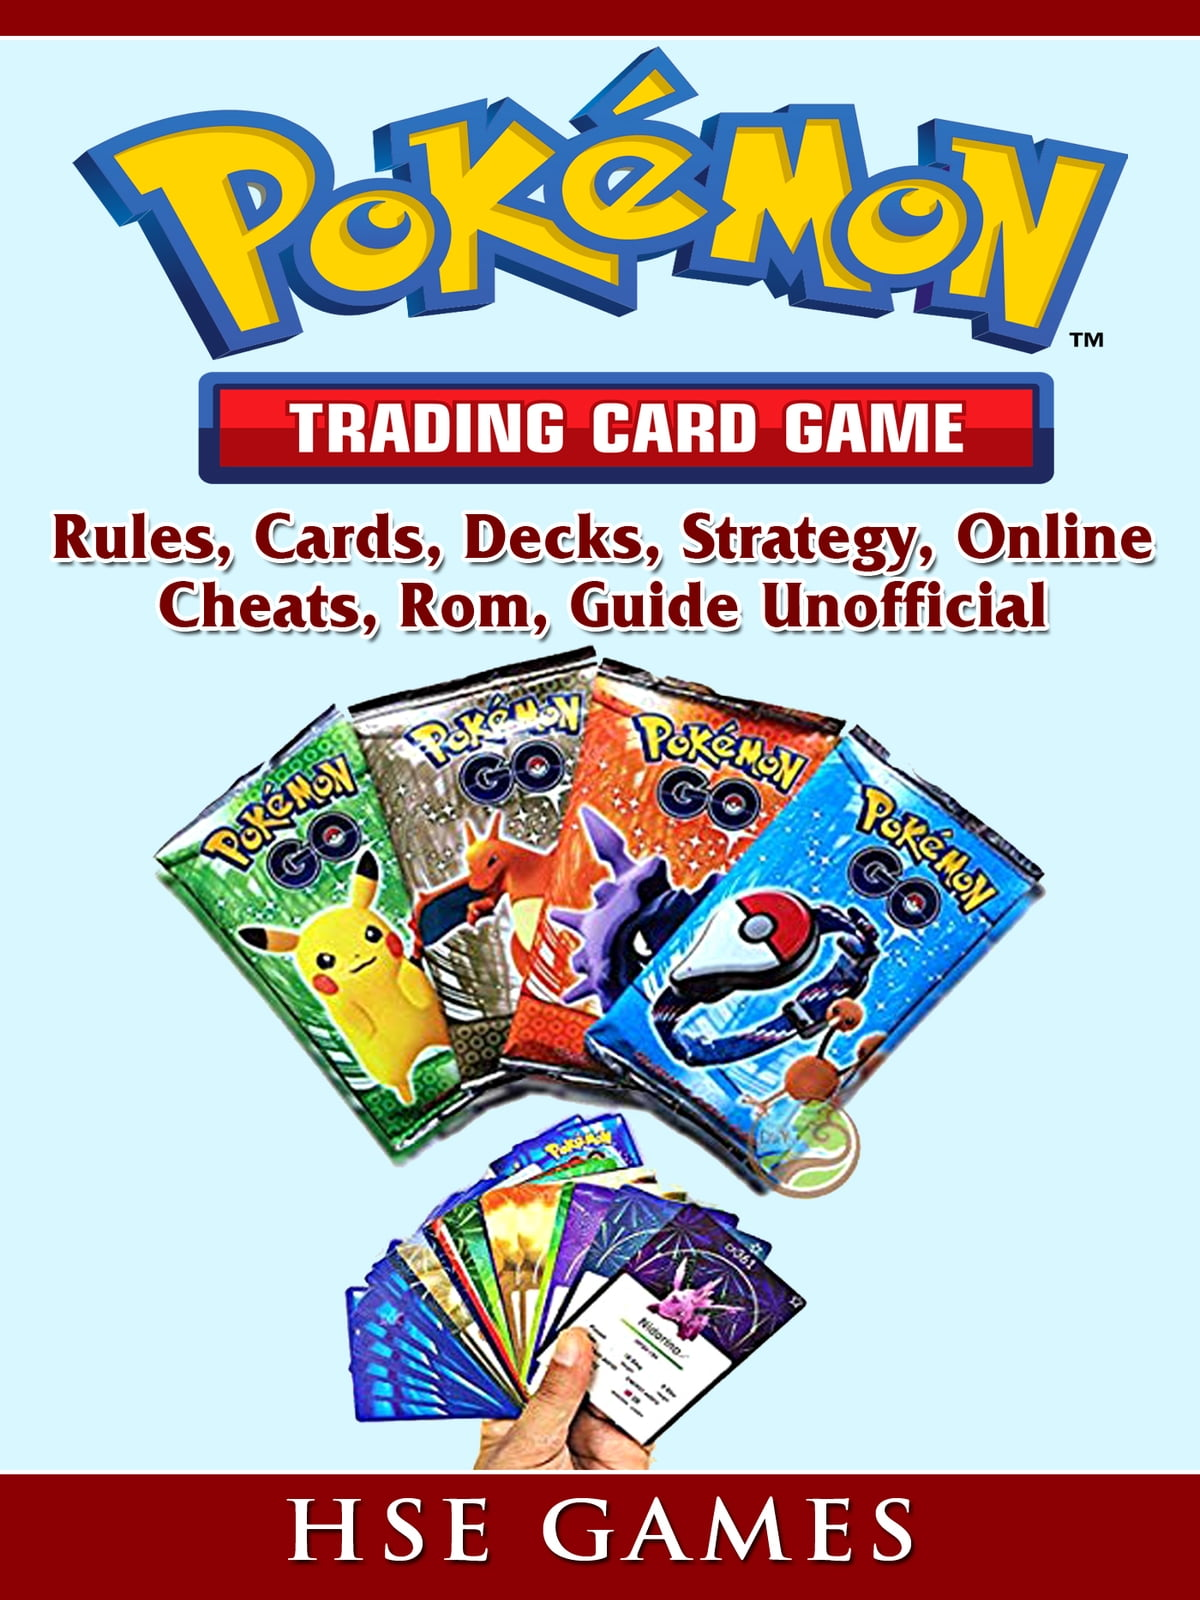 Pokemon Trading Card Game, Rules, Cards, Decks, Strategy, Online, Cheats,  Rom, Guide Unofficial ebook by Hse Guides - Rakuten Kobo